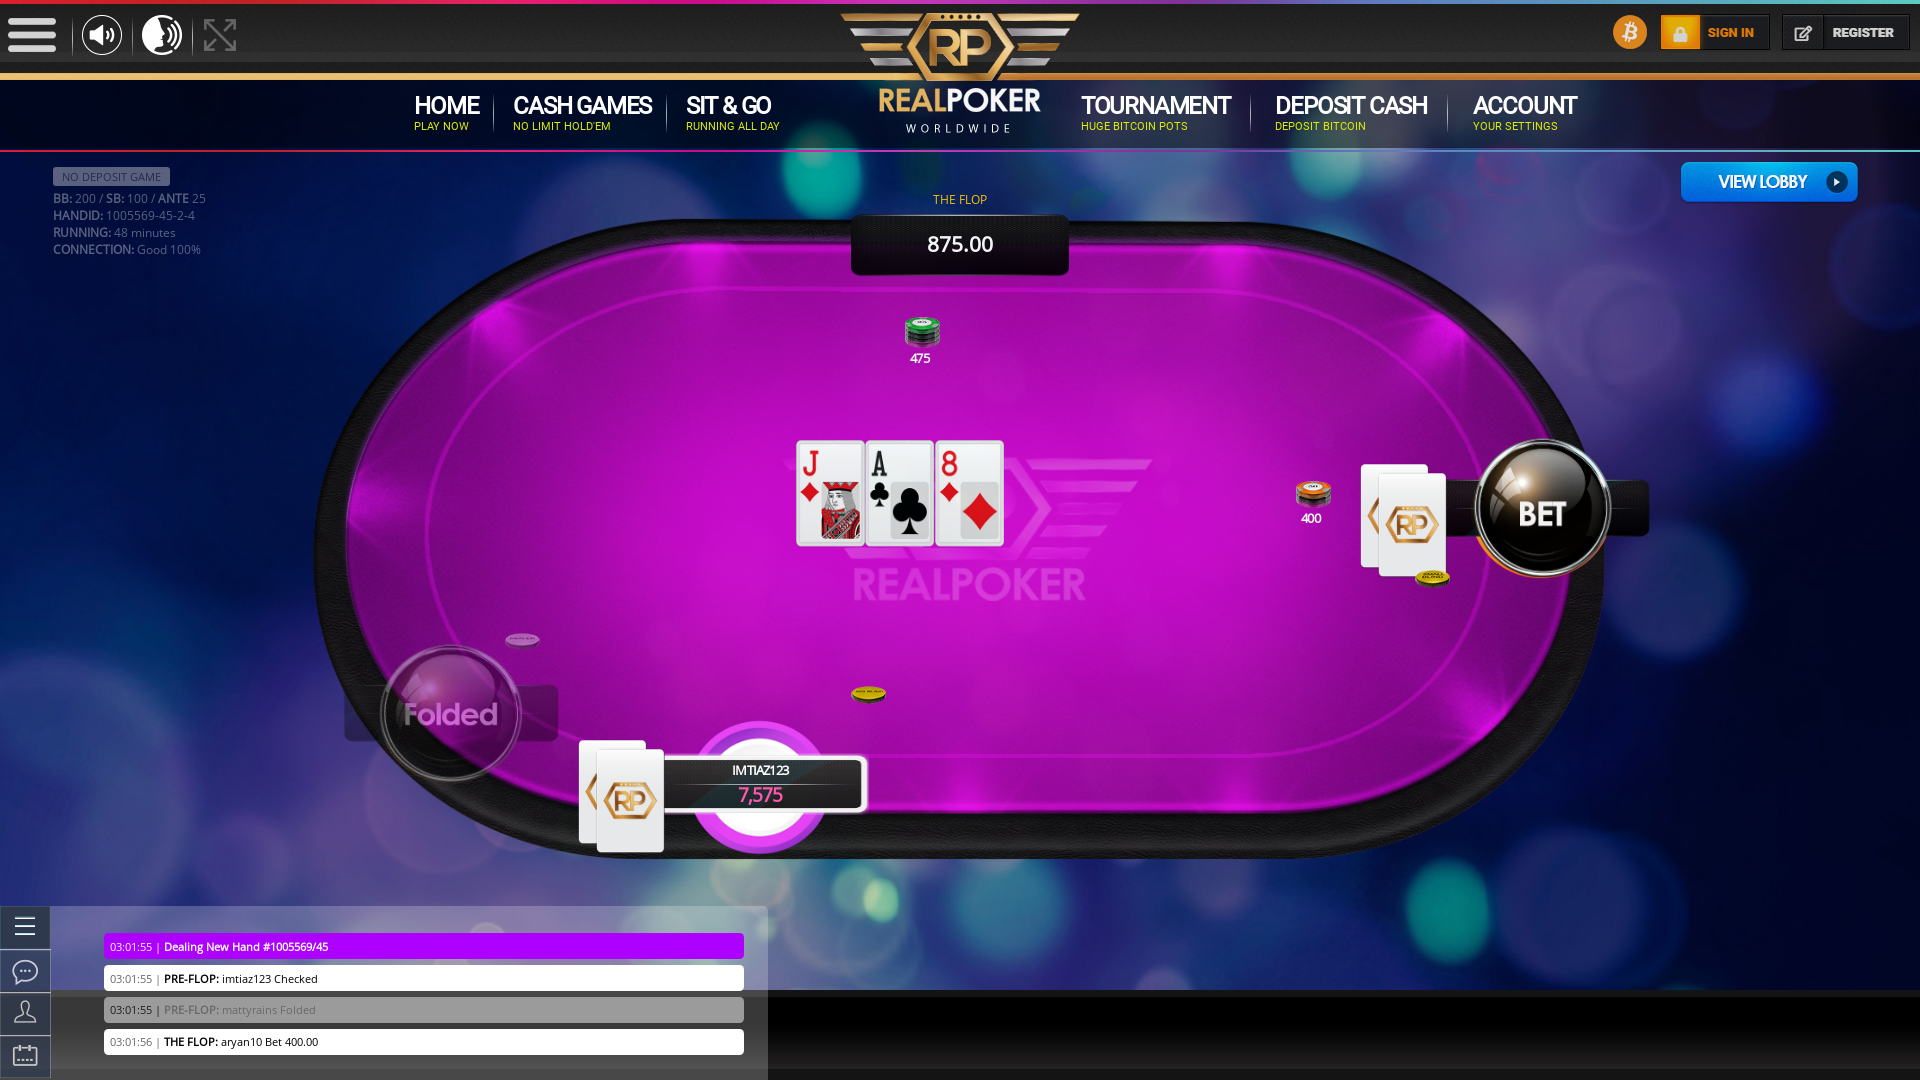 poker on a 10 player table in the 48th minute